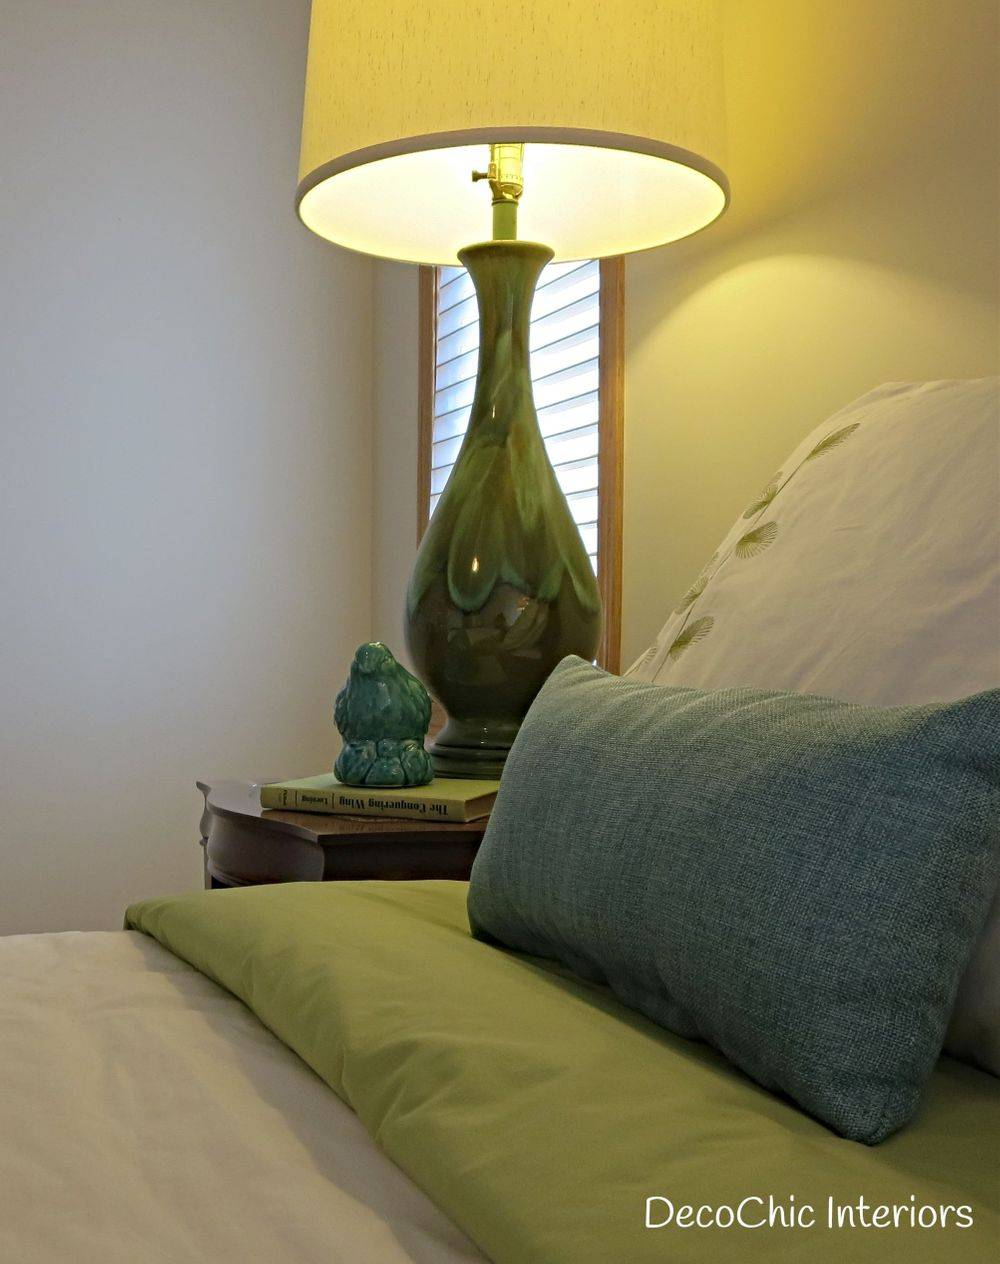 staging decorating winnipeg bird lamp bedroom certified staging professional realestate staging expert decochic interiors